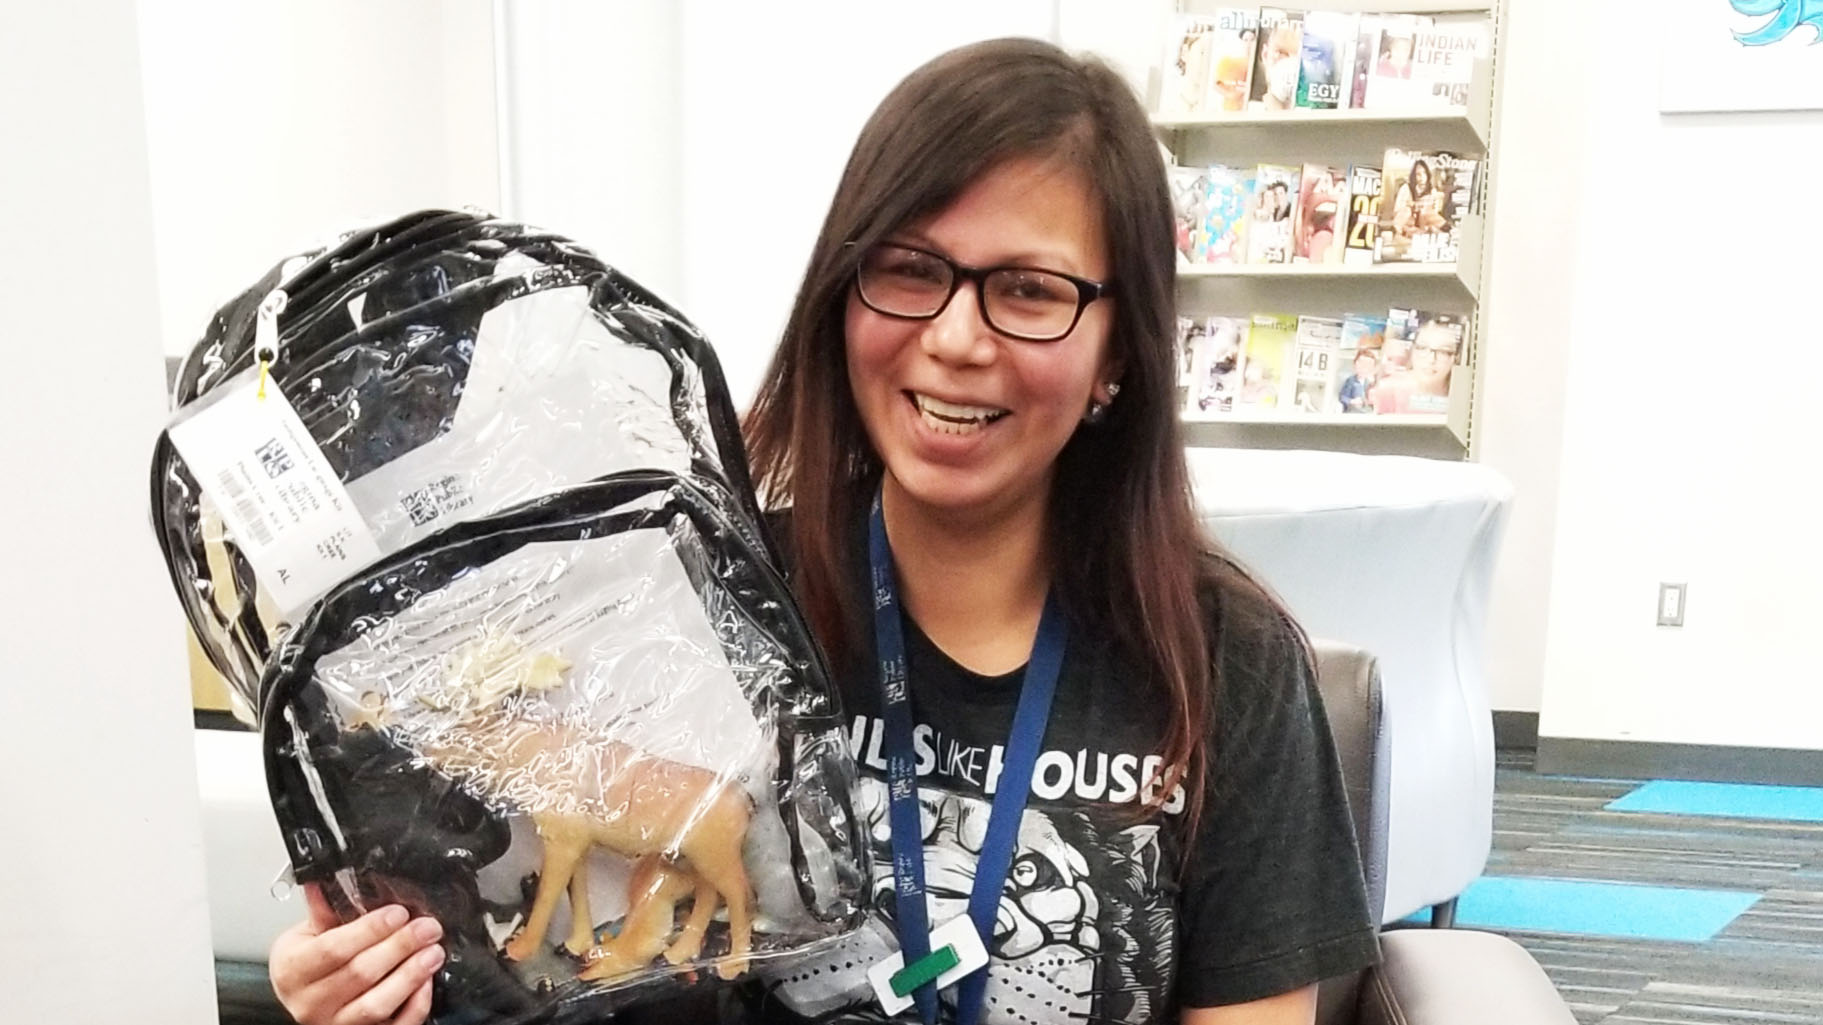 RPL staff member, Whitney, at mâmawêyatitân centre's Albert branch holding an Indigenous language kits